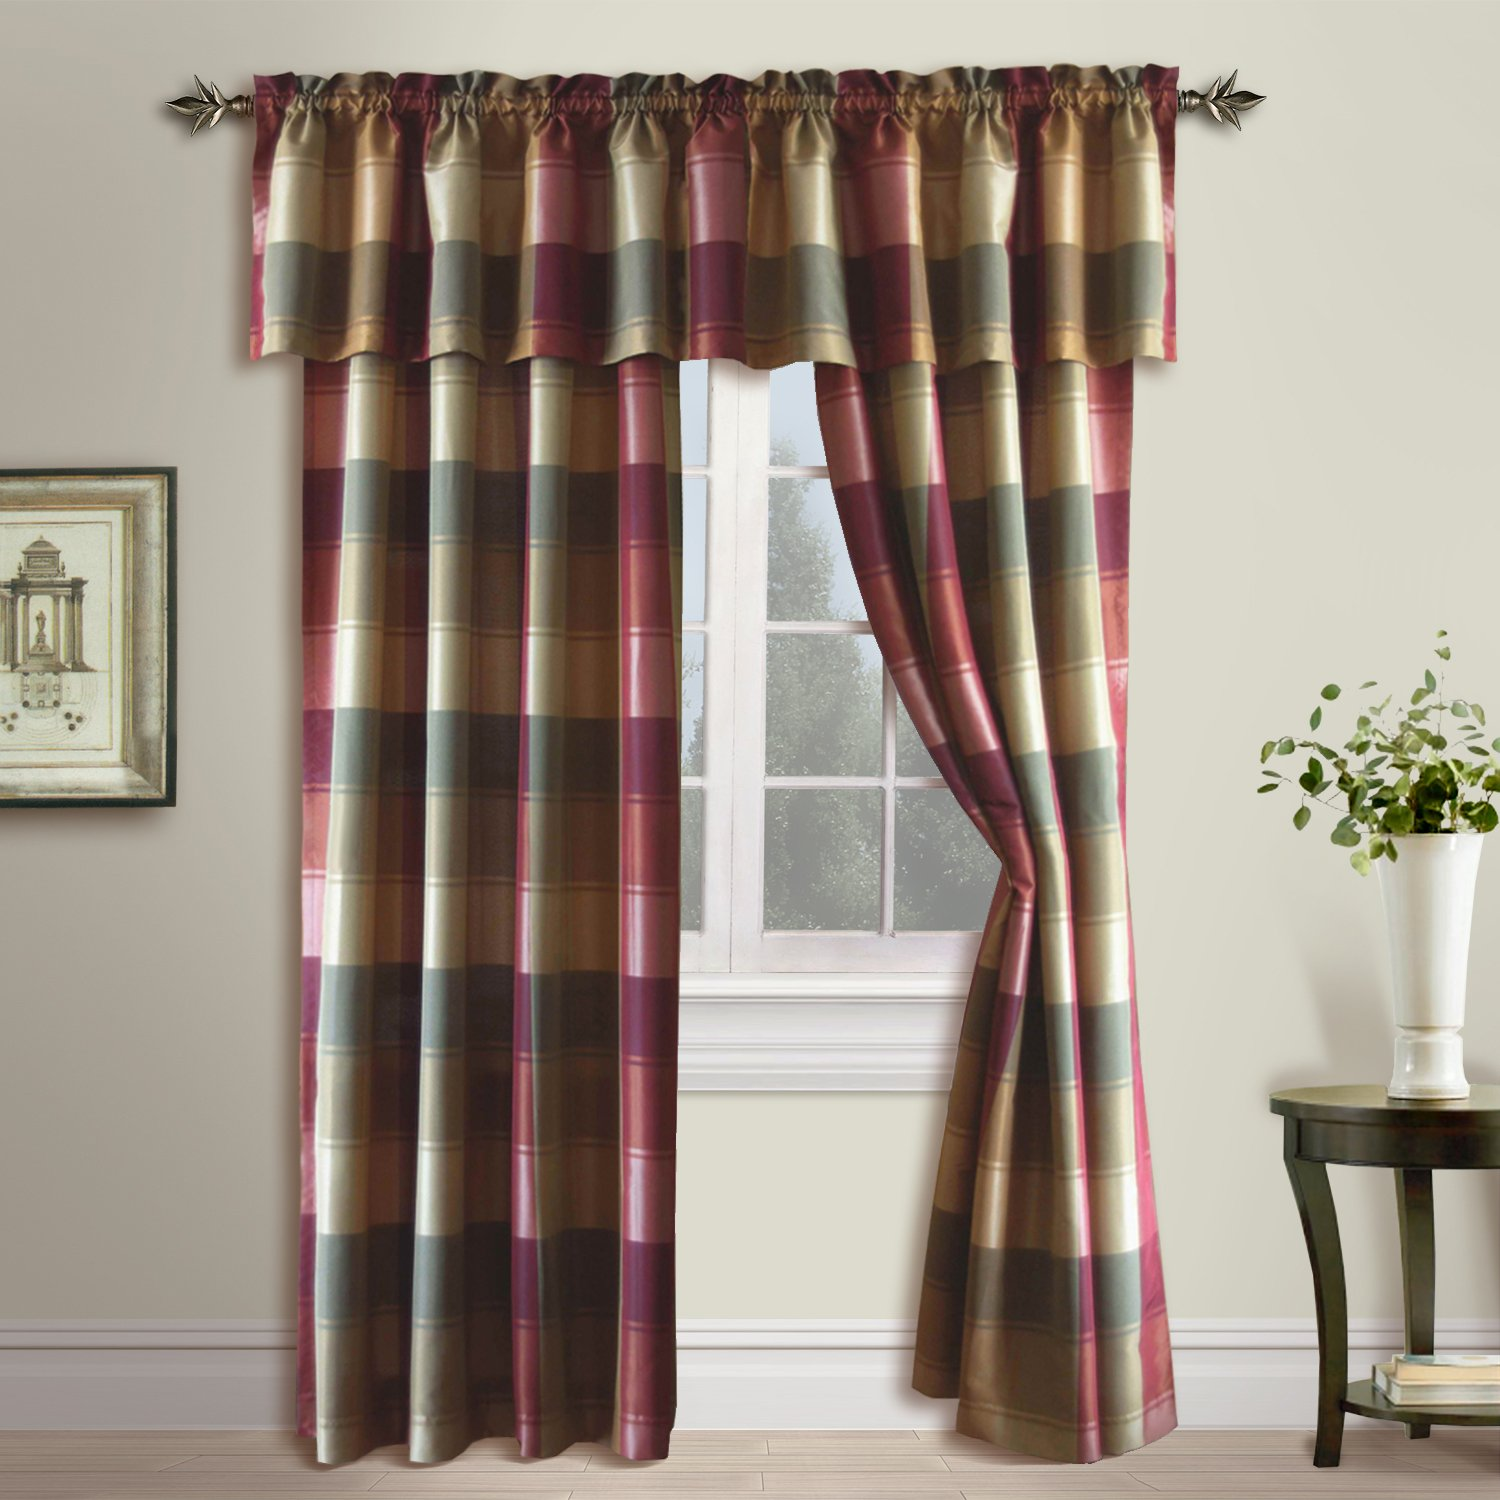 short curved shower rod black pole and beyond curtains curtain spring tension extender marvelous bed bath rods